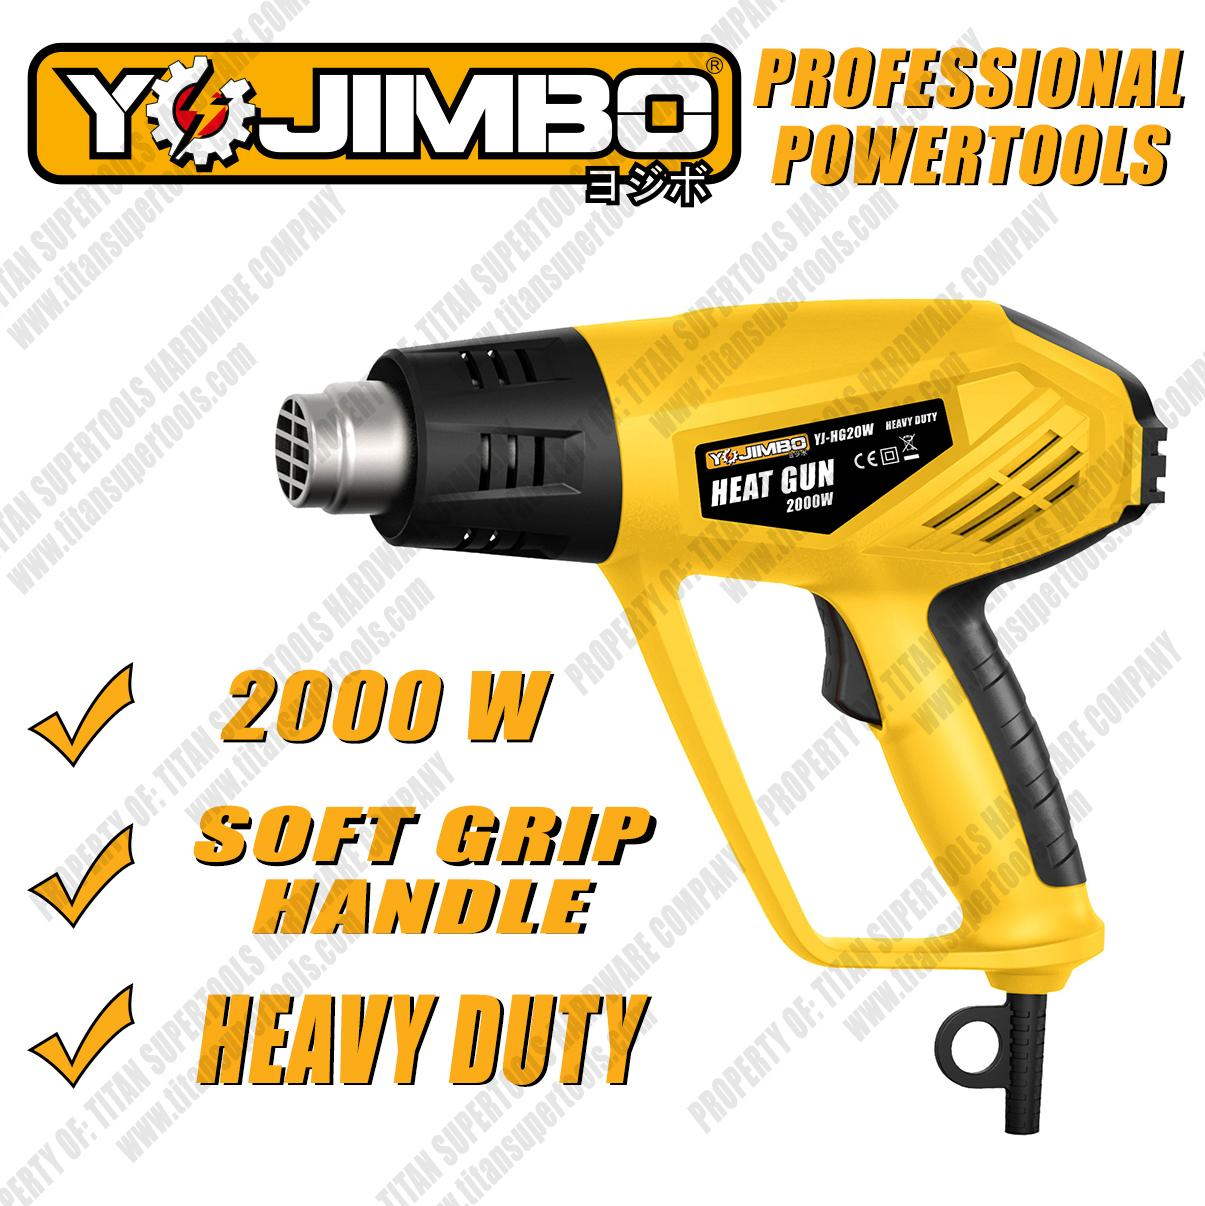 Yojimbo Yj-Hg20w Heat Gun 2000w Professional Heavy Duty (yellow) By Mount Gallelli.